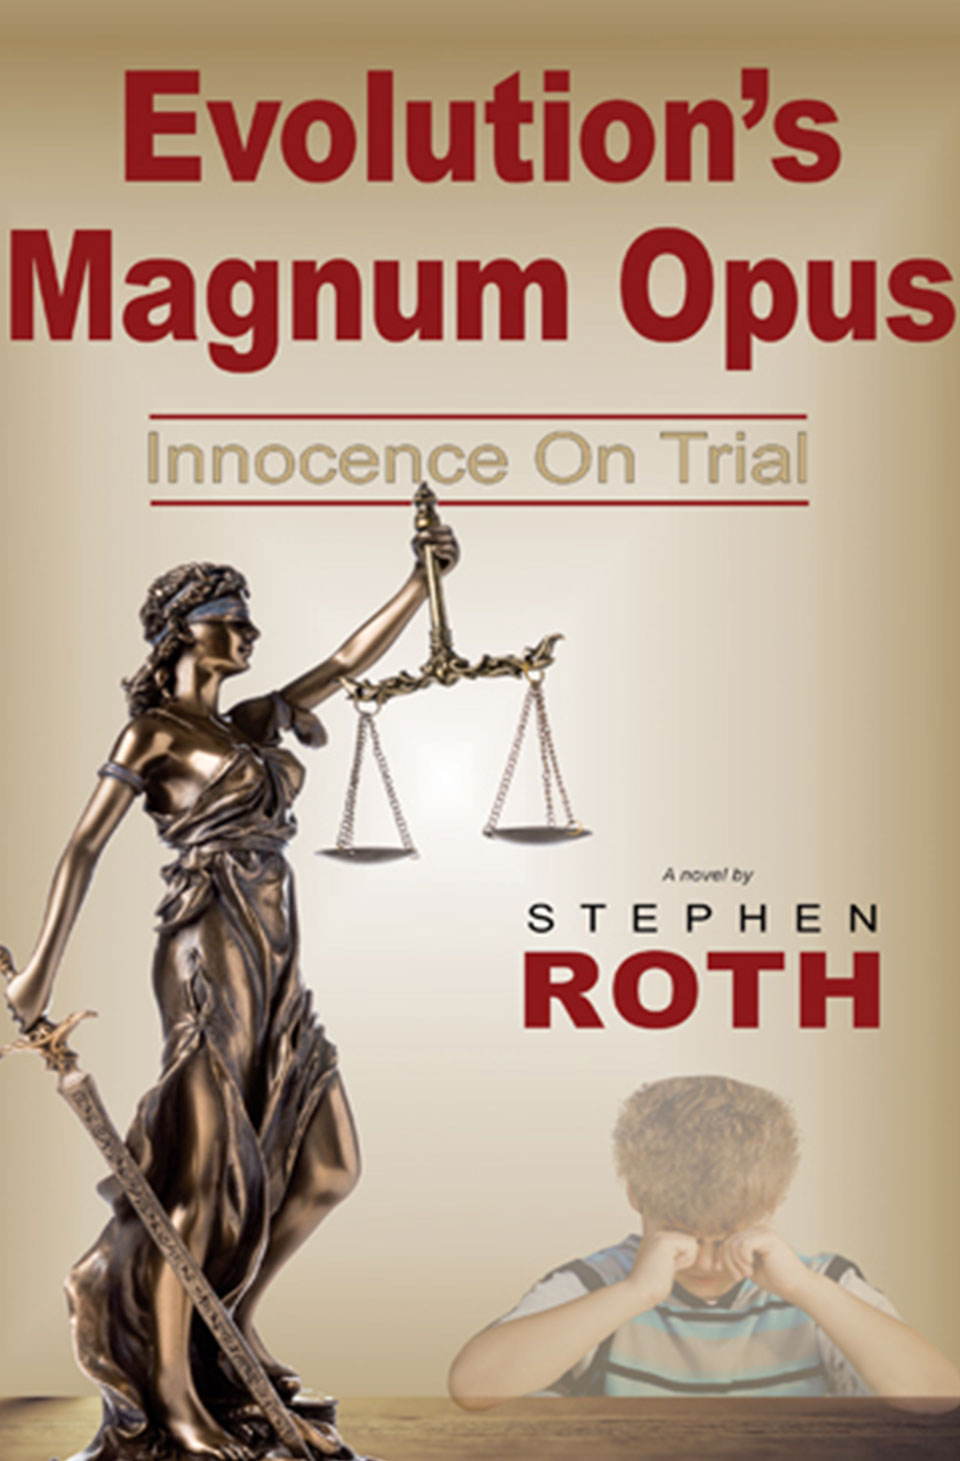 Evolution's Magnum Opus by Stephen Roth